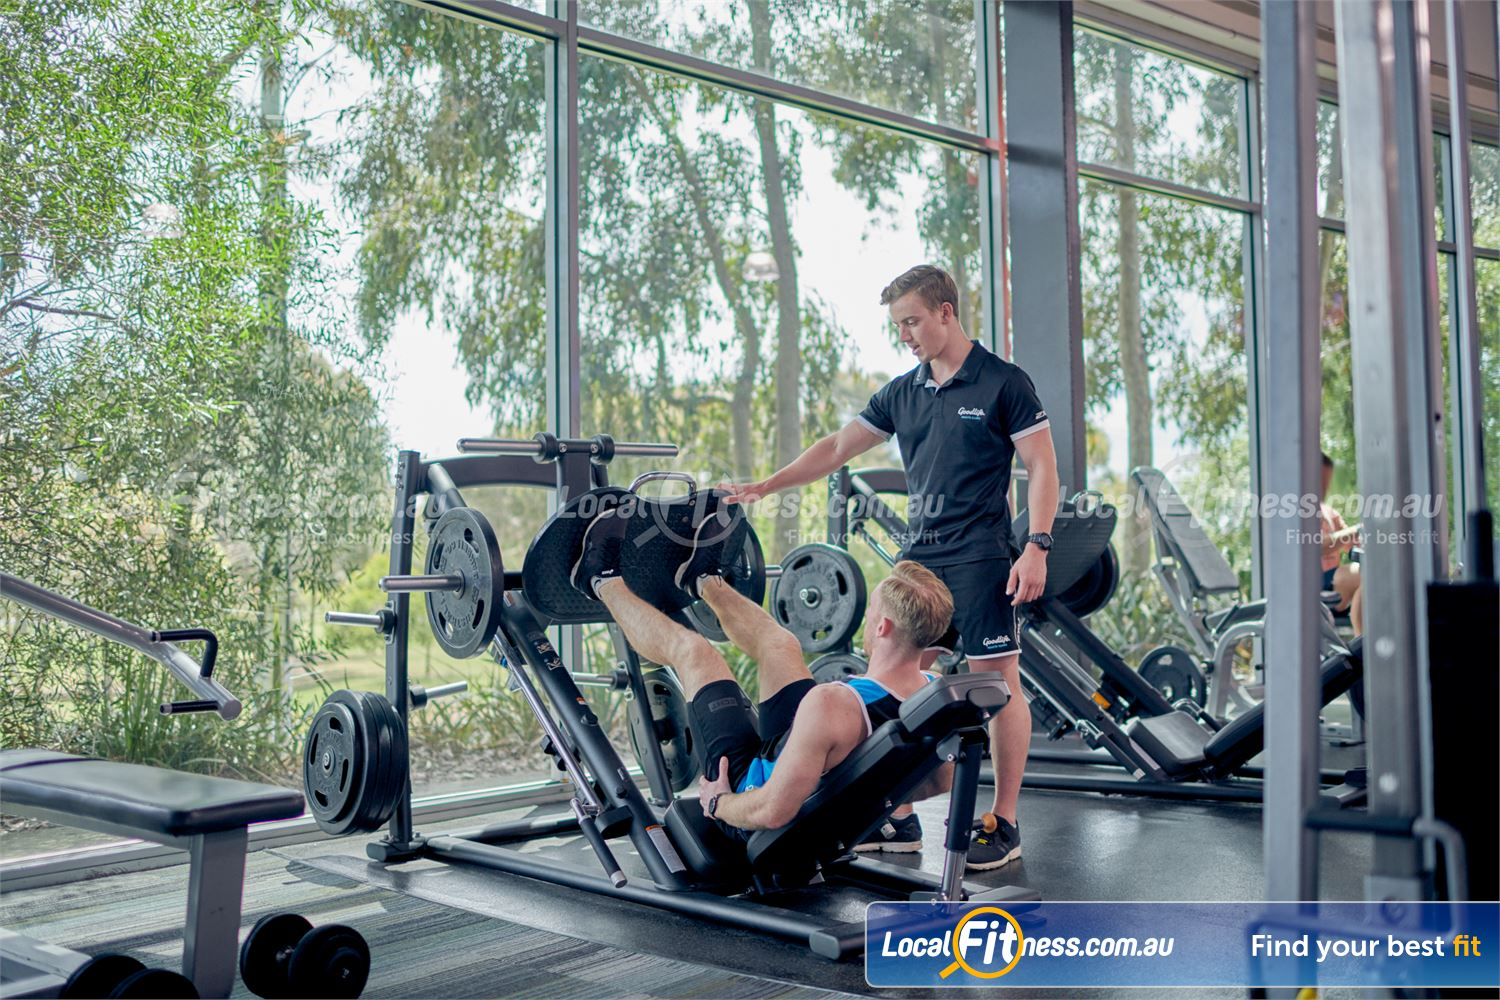 Goodlife Health Clubs Near Baxter Our Karingal gym provides heavy duty plate loading machines inc. the leg press.